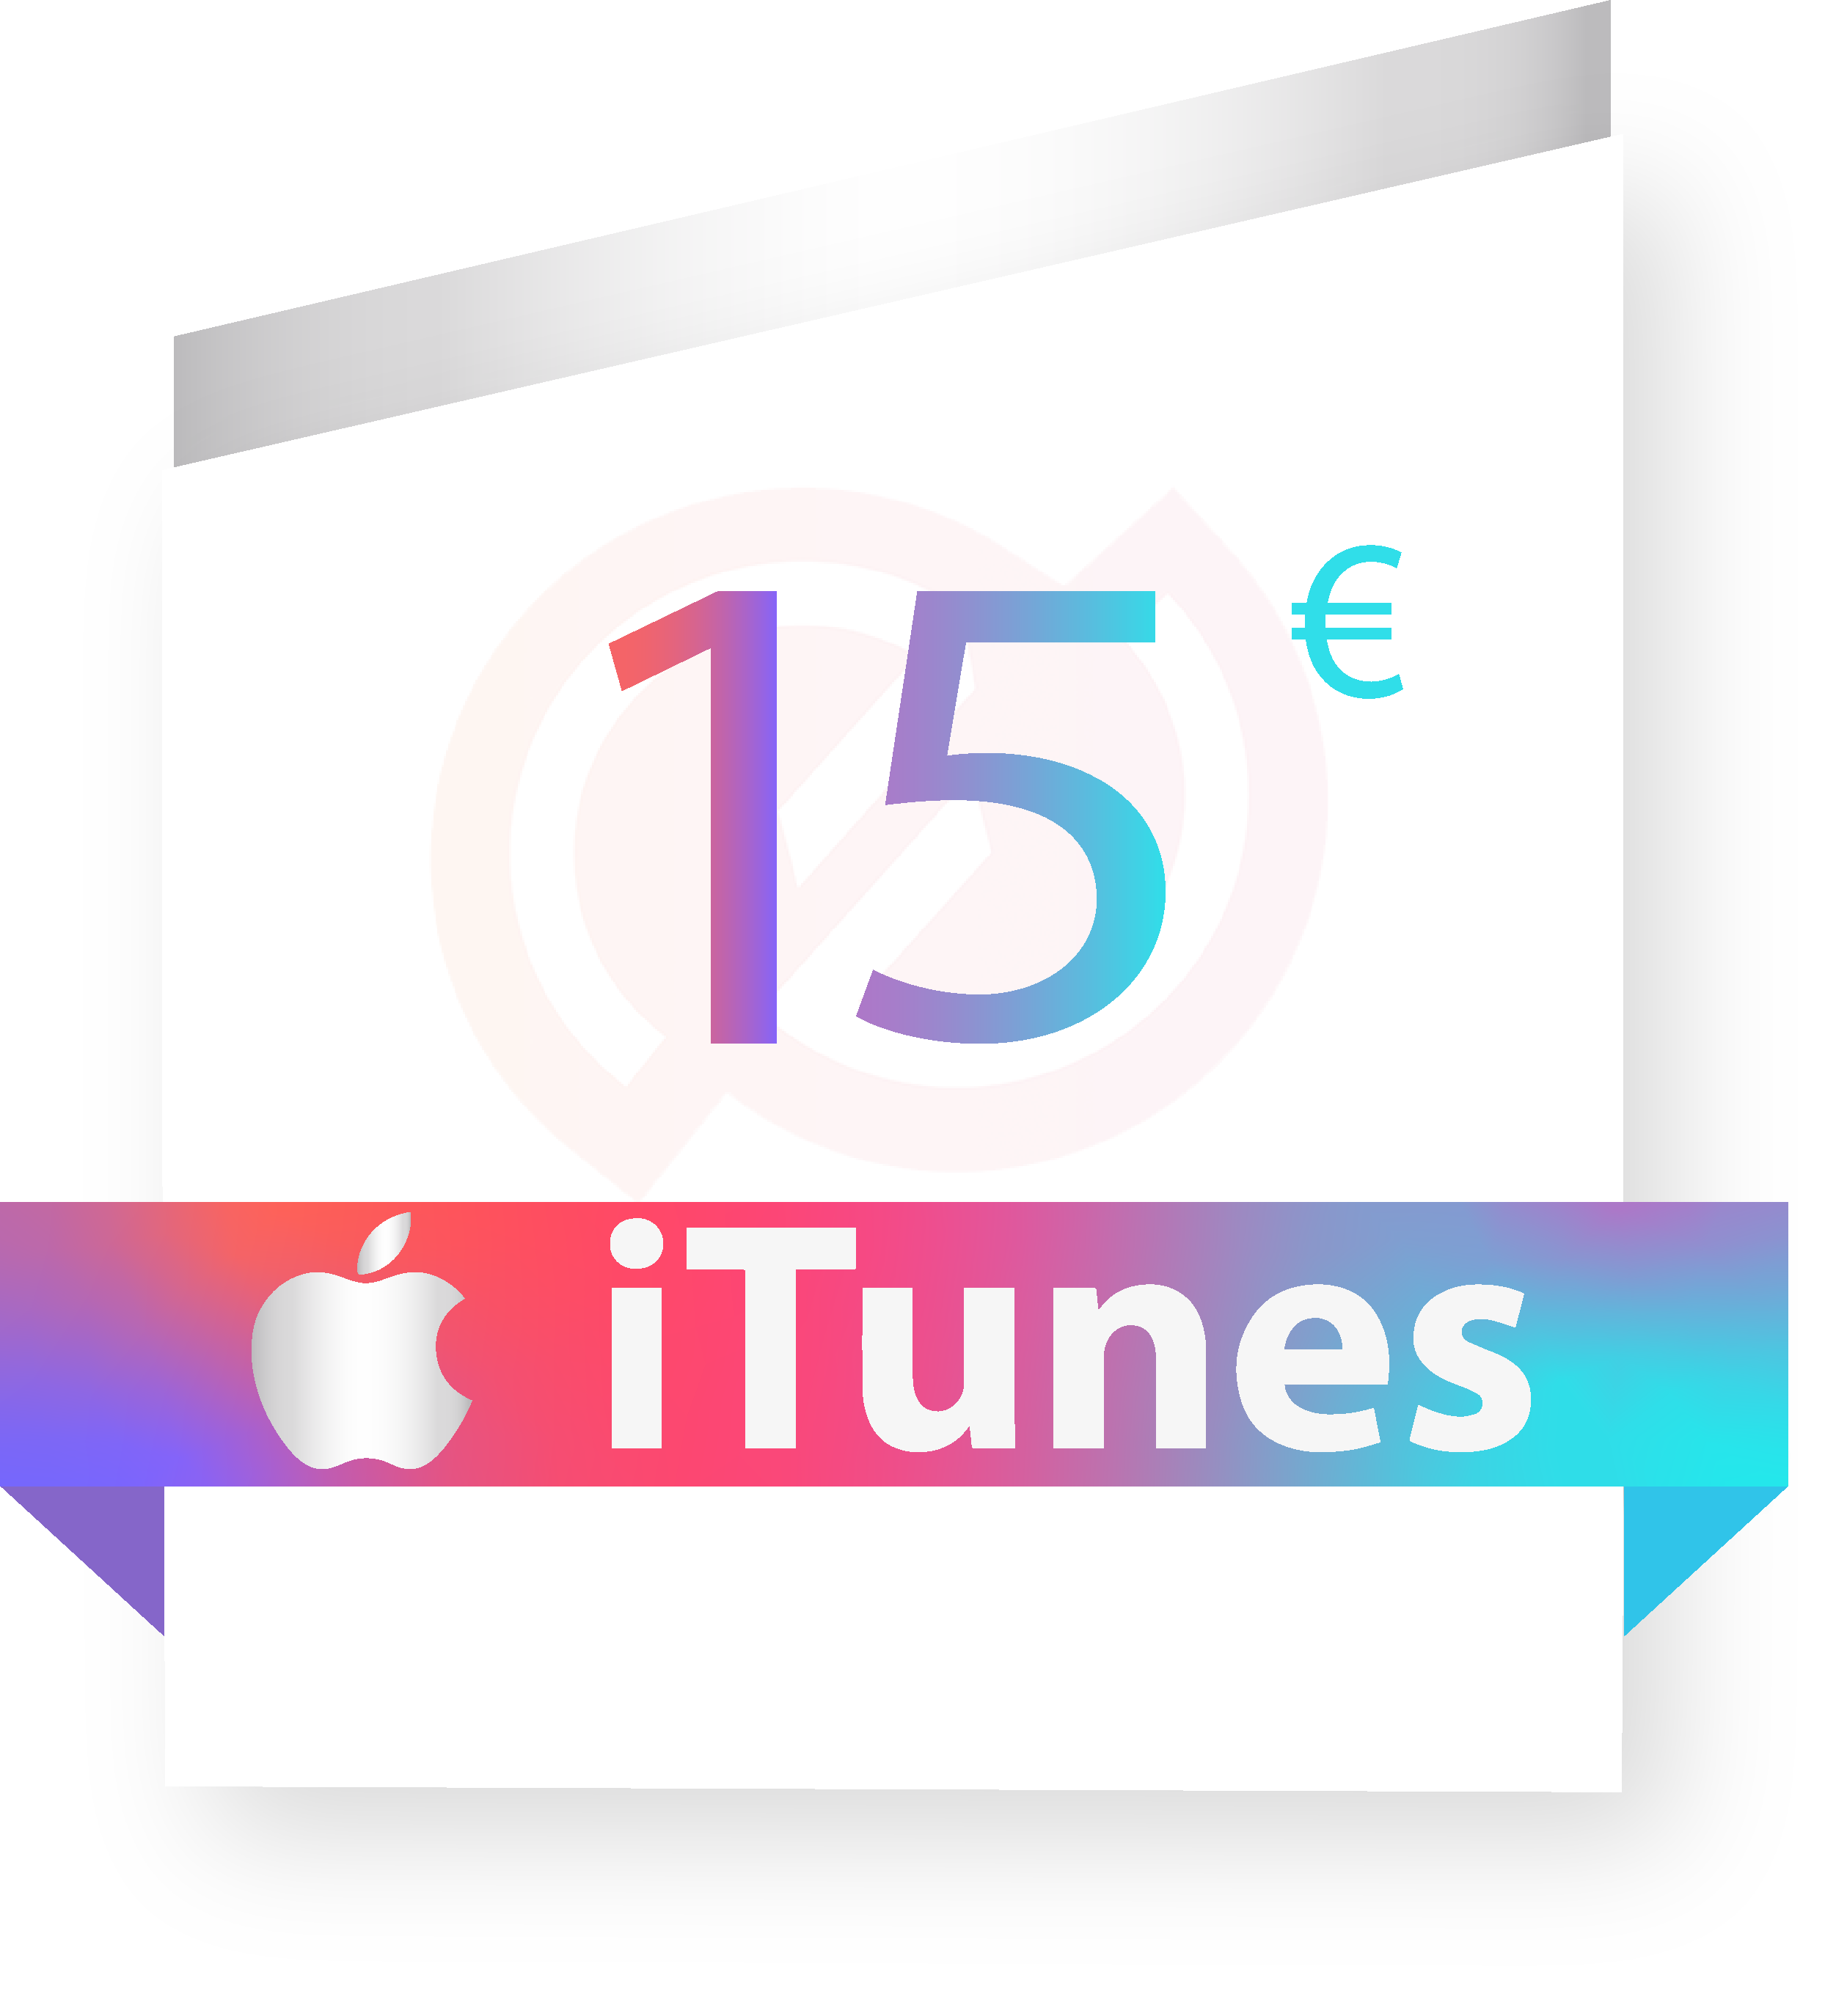 Coupon iTunes 15€ sur internet - Gueez